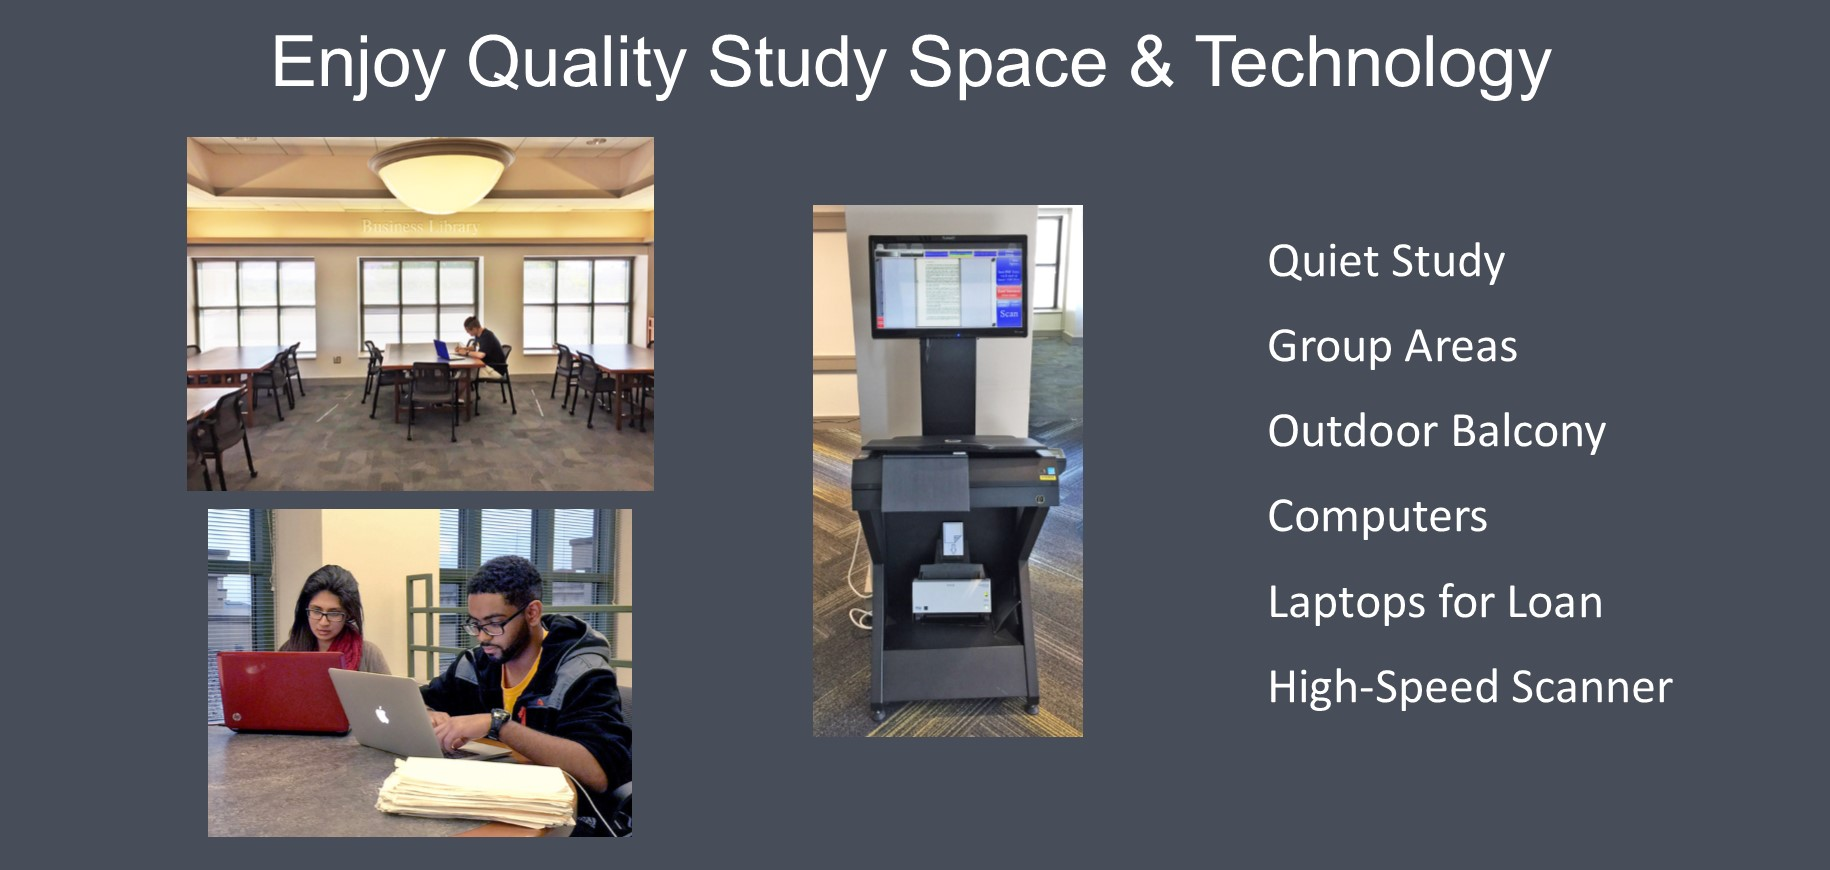 Enjoy quality study space and technology